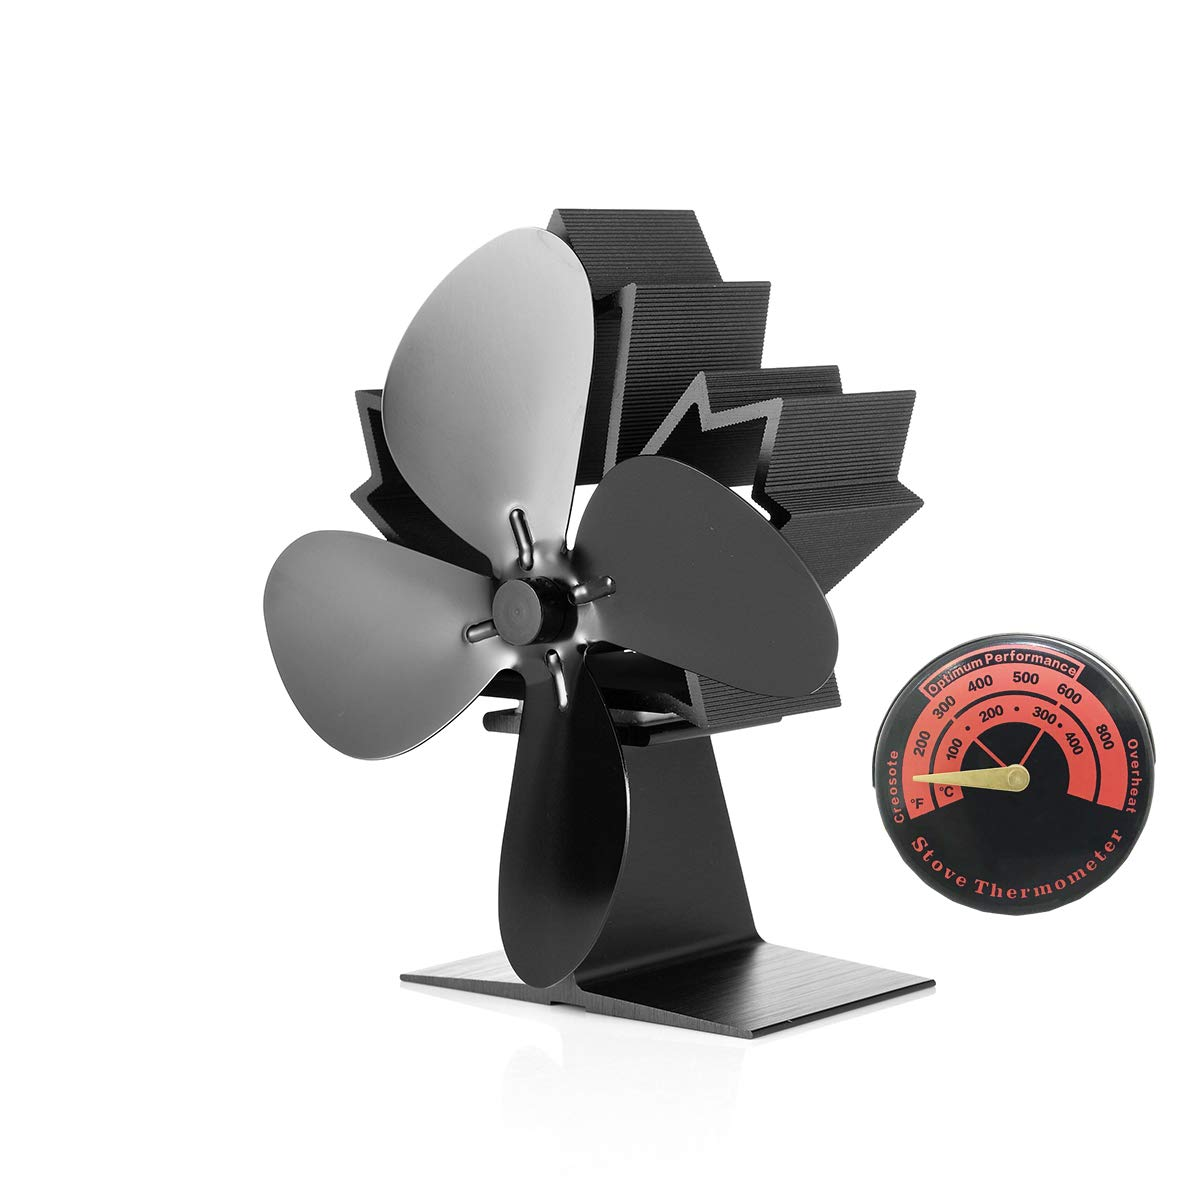 G G-WEI Heat Powered Stove Fan 4 Blades Fireplace Fan, 50°C Heating Silent Wood Stove Fans for Wood/Log Burner/Fireplace, Wood Burning Eco-Friendly Fan and Full Heat Distribution (2018 Style)